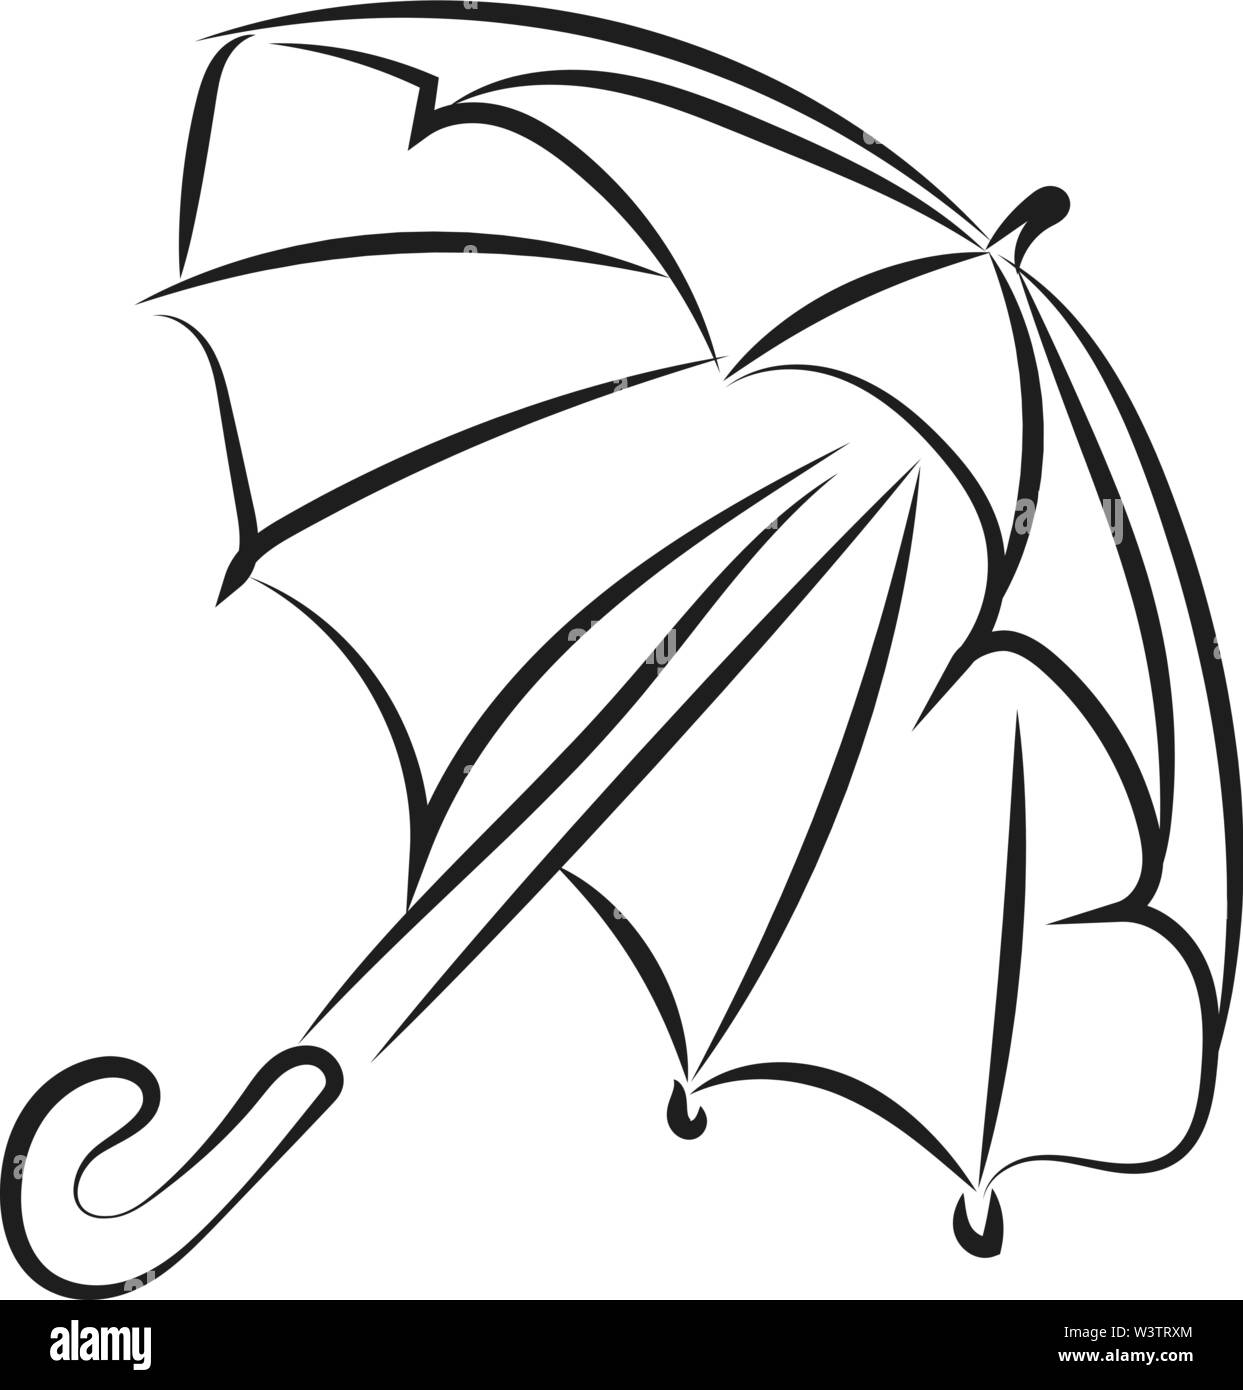 Drawing of umbrella, illustration, vector on white background. - Stock Image